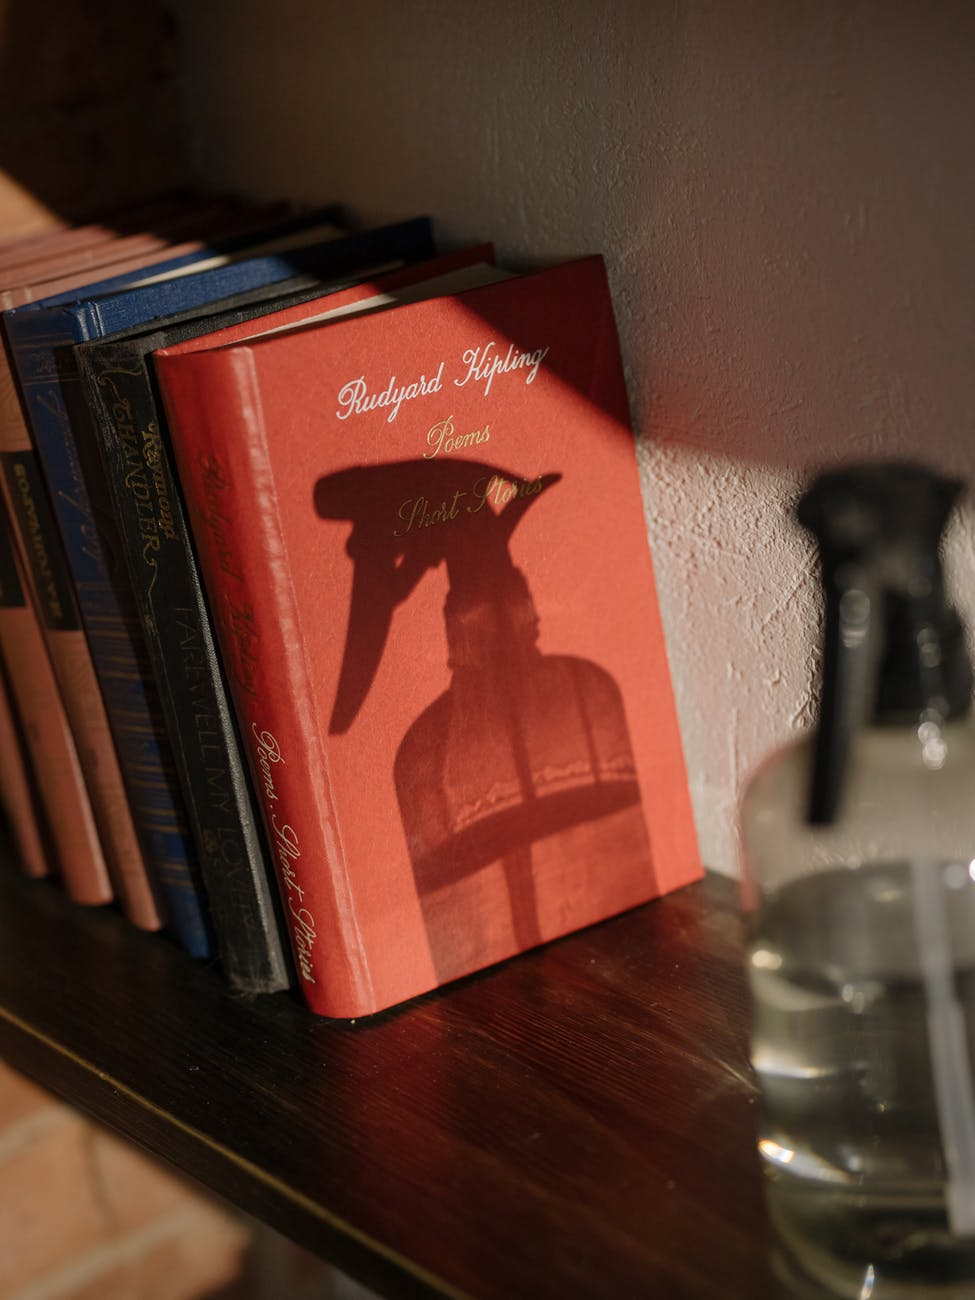 Light shining on a spray bottle of clear liquid that is casting a shadow on a shelf of vintage books.